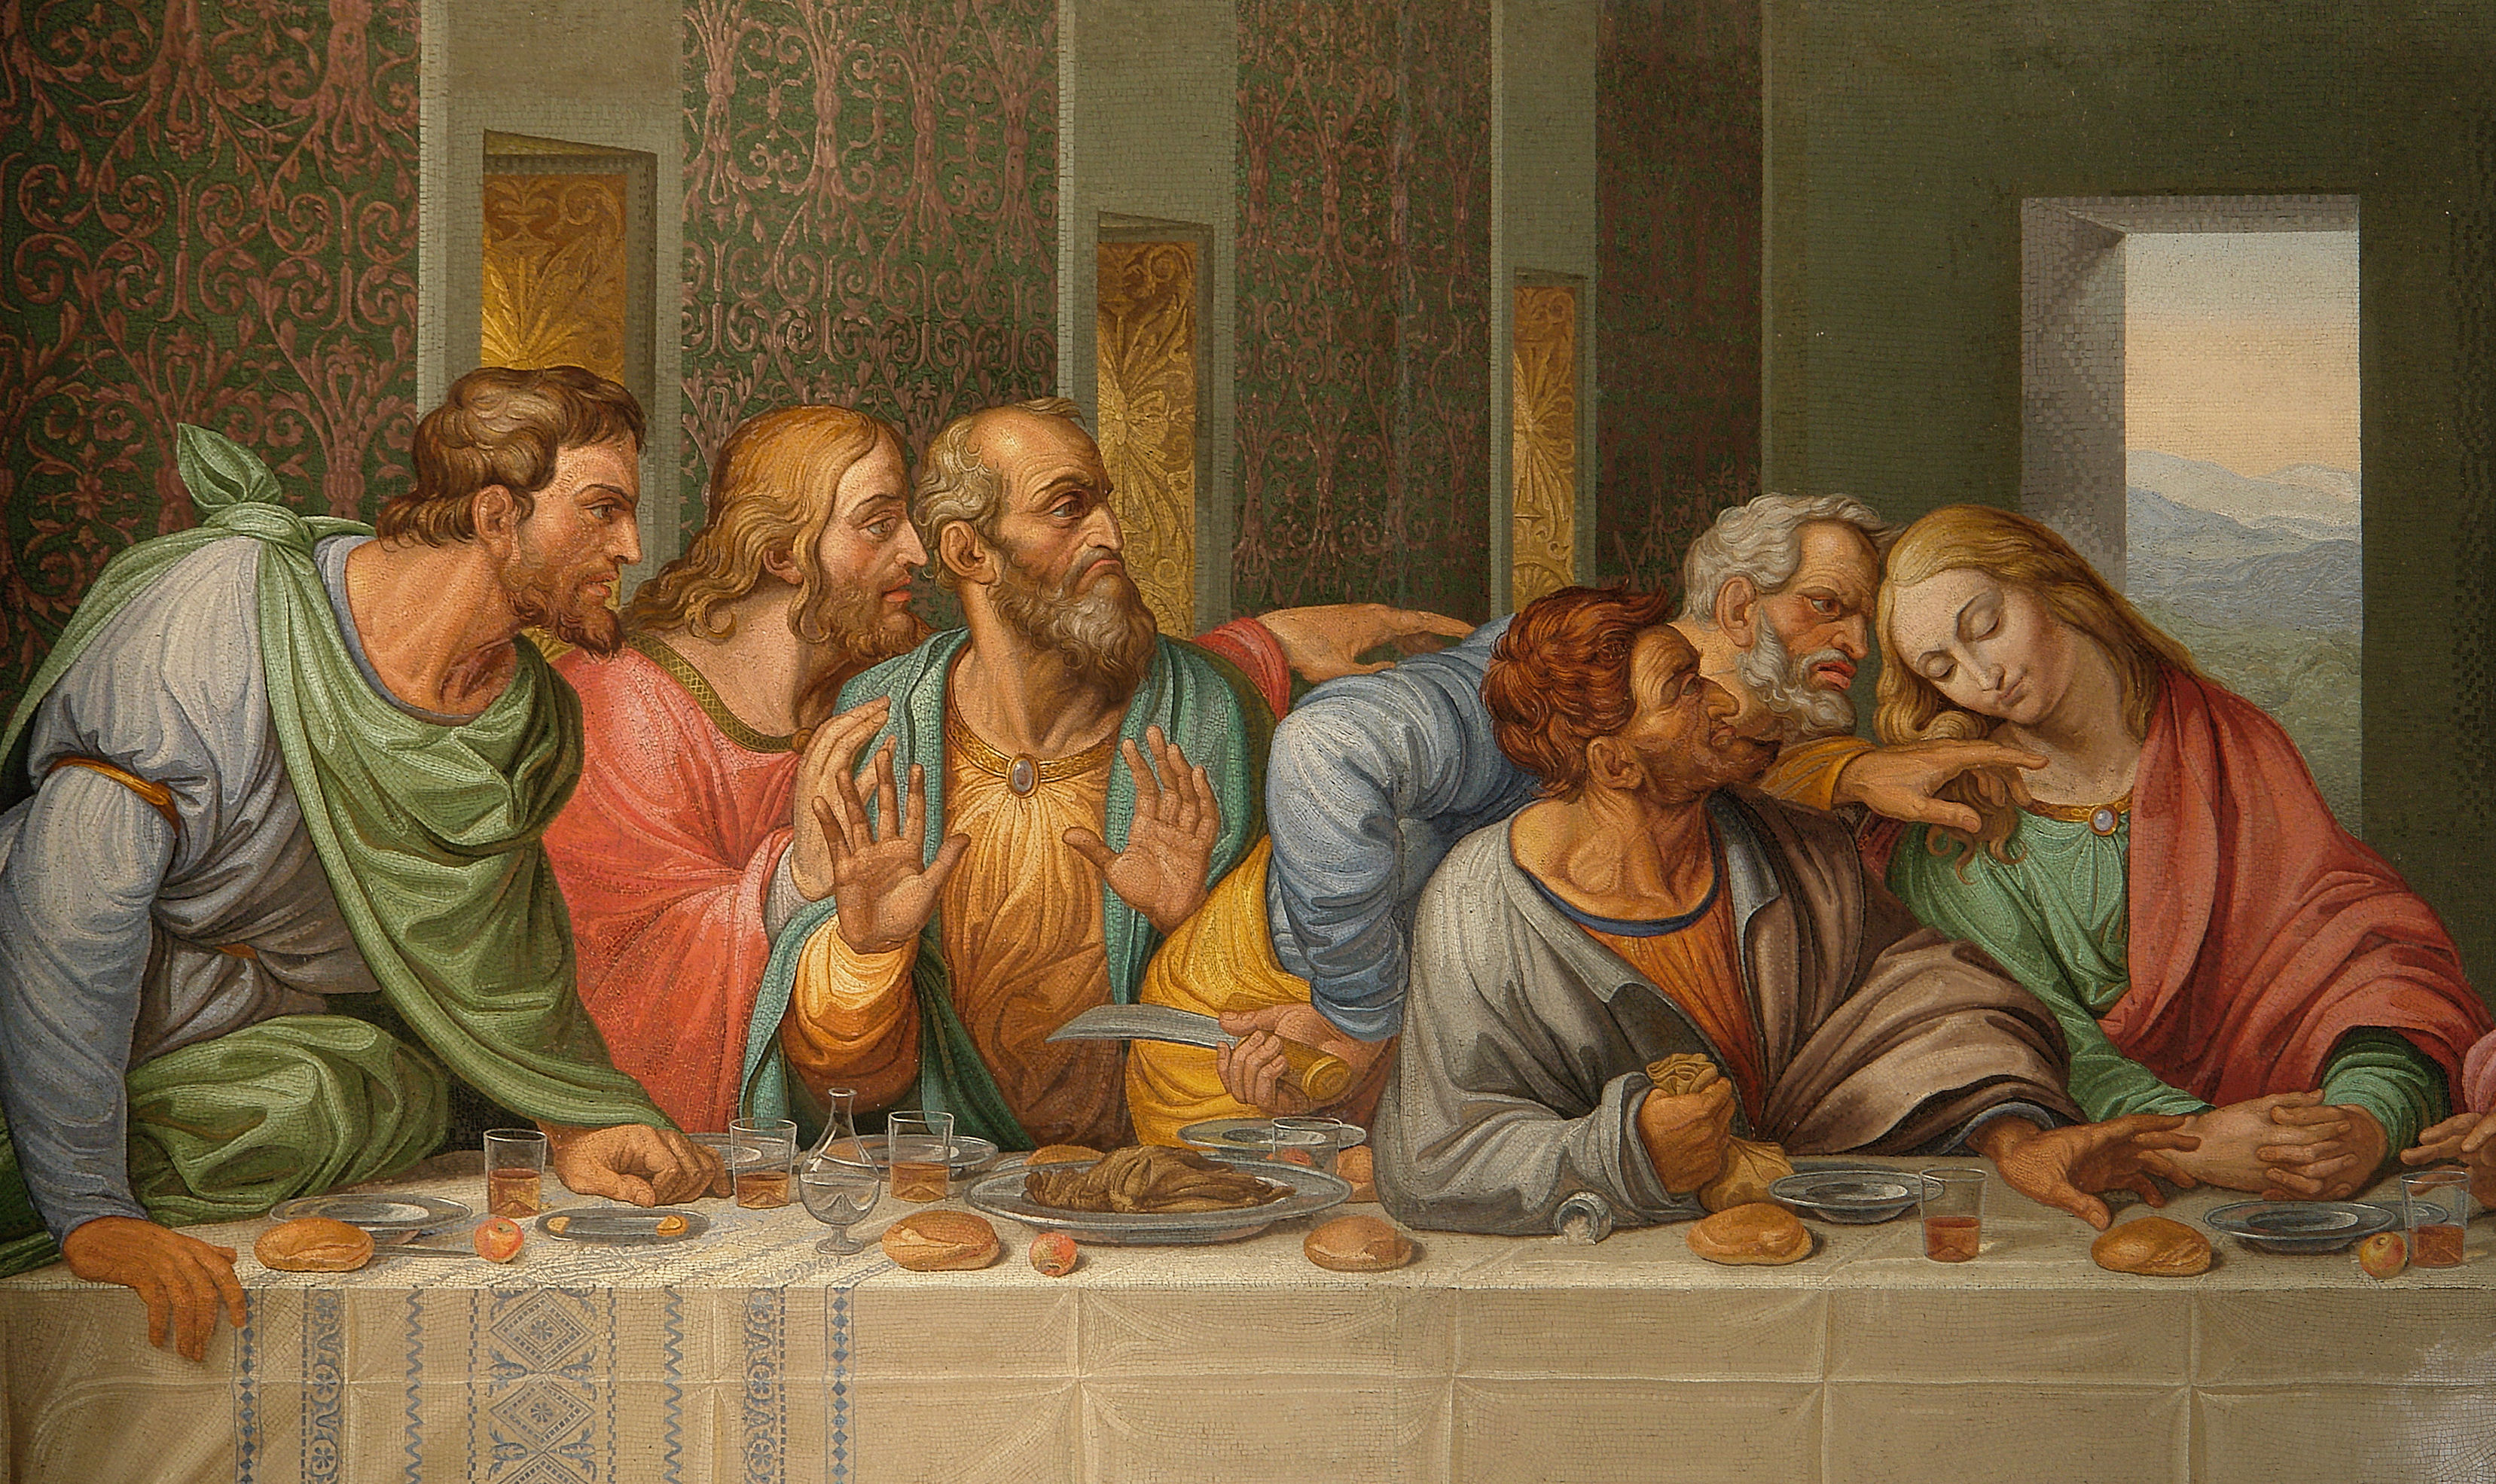 why judas was actually more of a saint than a sinner